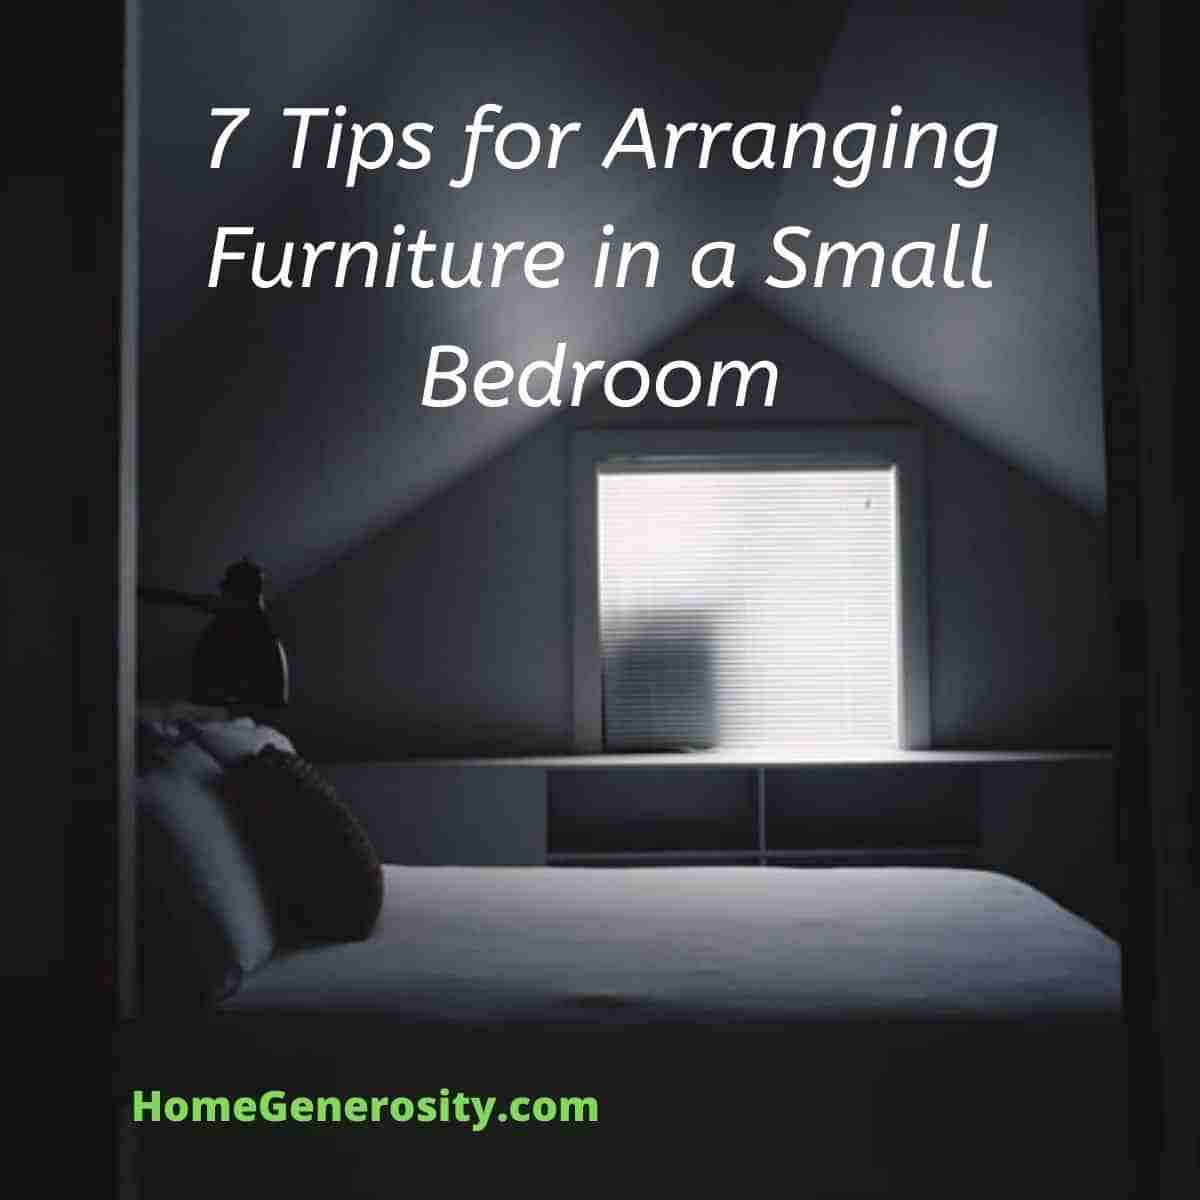 7 tips for arranging furniture in a small bedroom